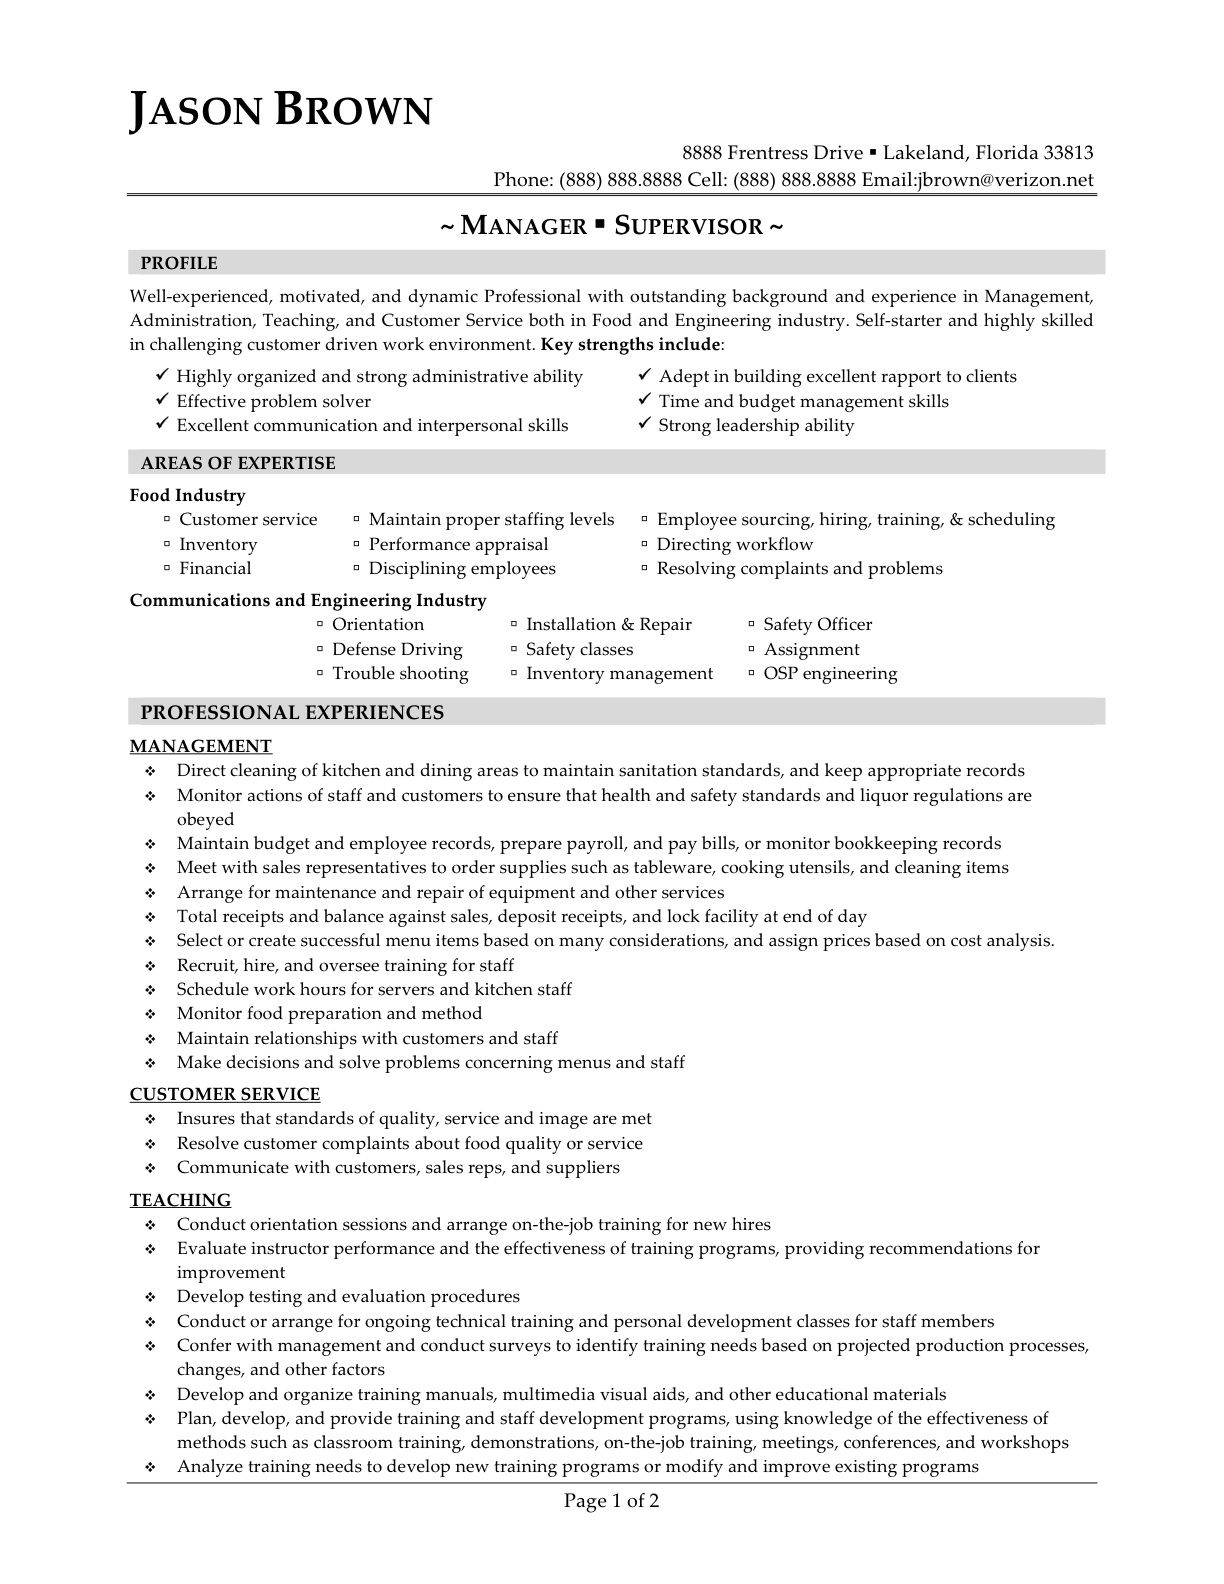 Supervisor Resume Sample Free Call Center Supervisor Resume Sample,  Customer Service Supervisor Resume Sample,  Supervisor Resume Skills